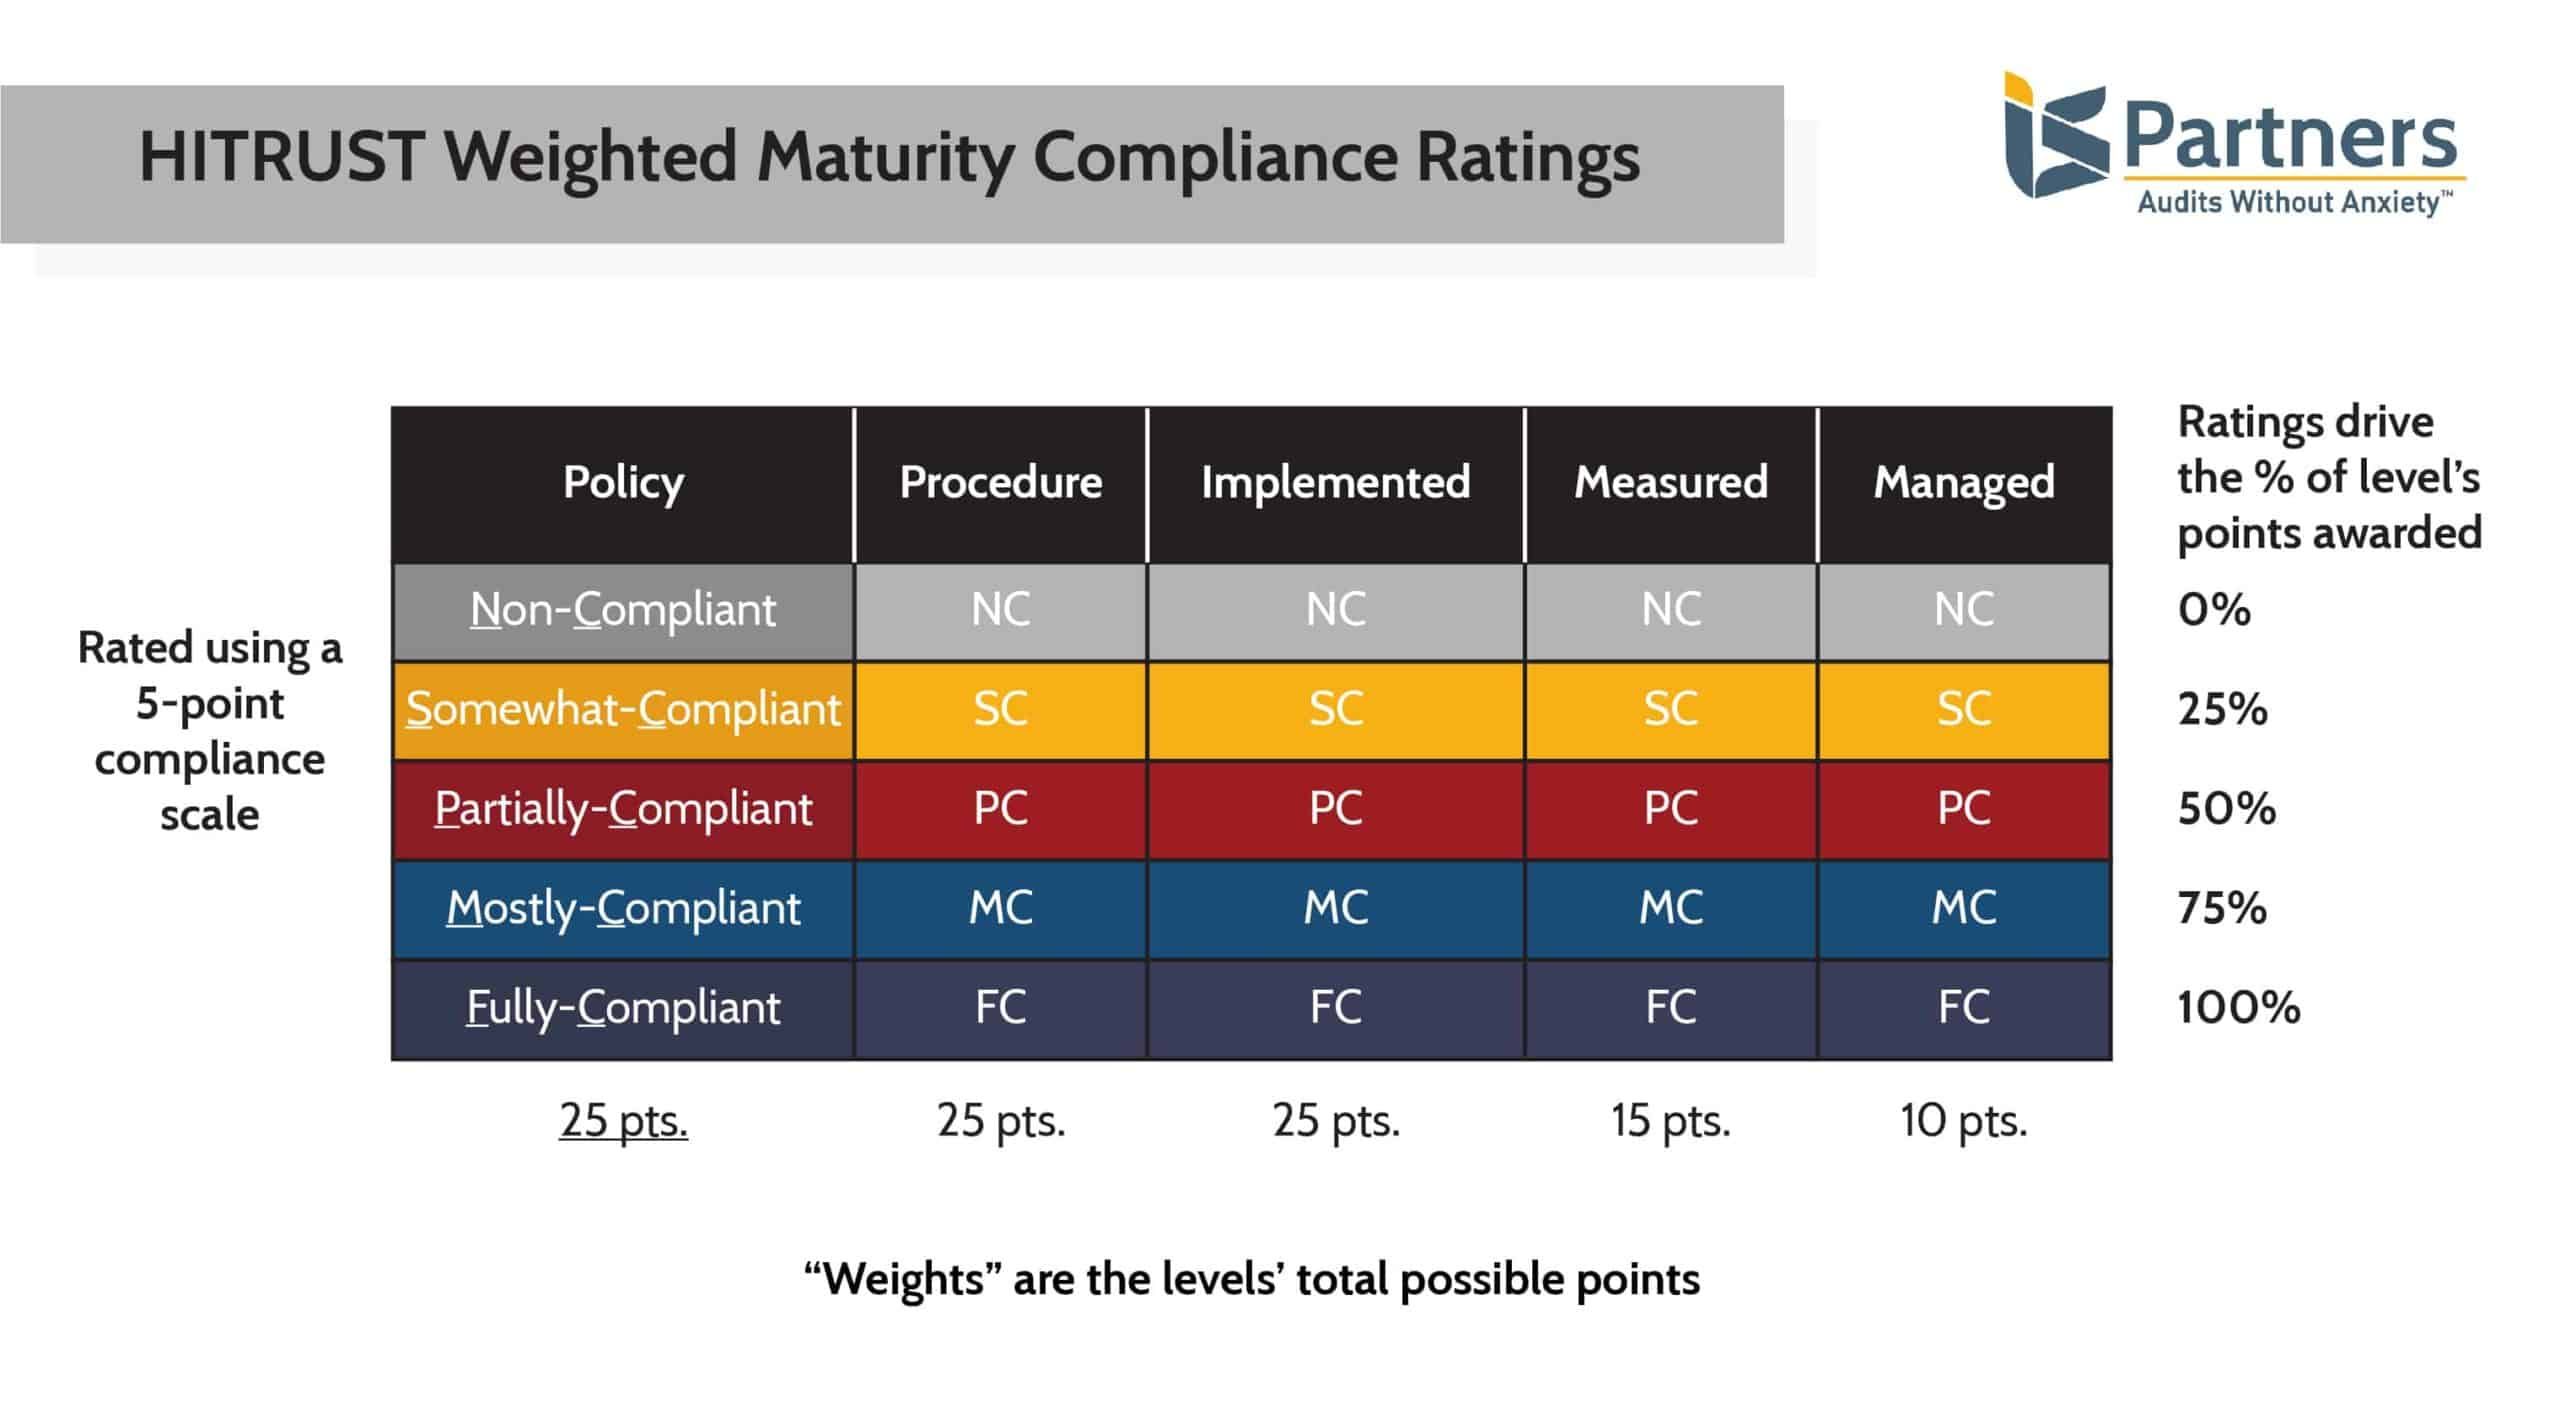 table showing the current HITRUST Weighted Maturity Compliance Ratings